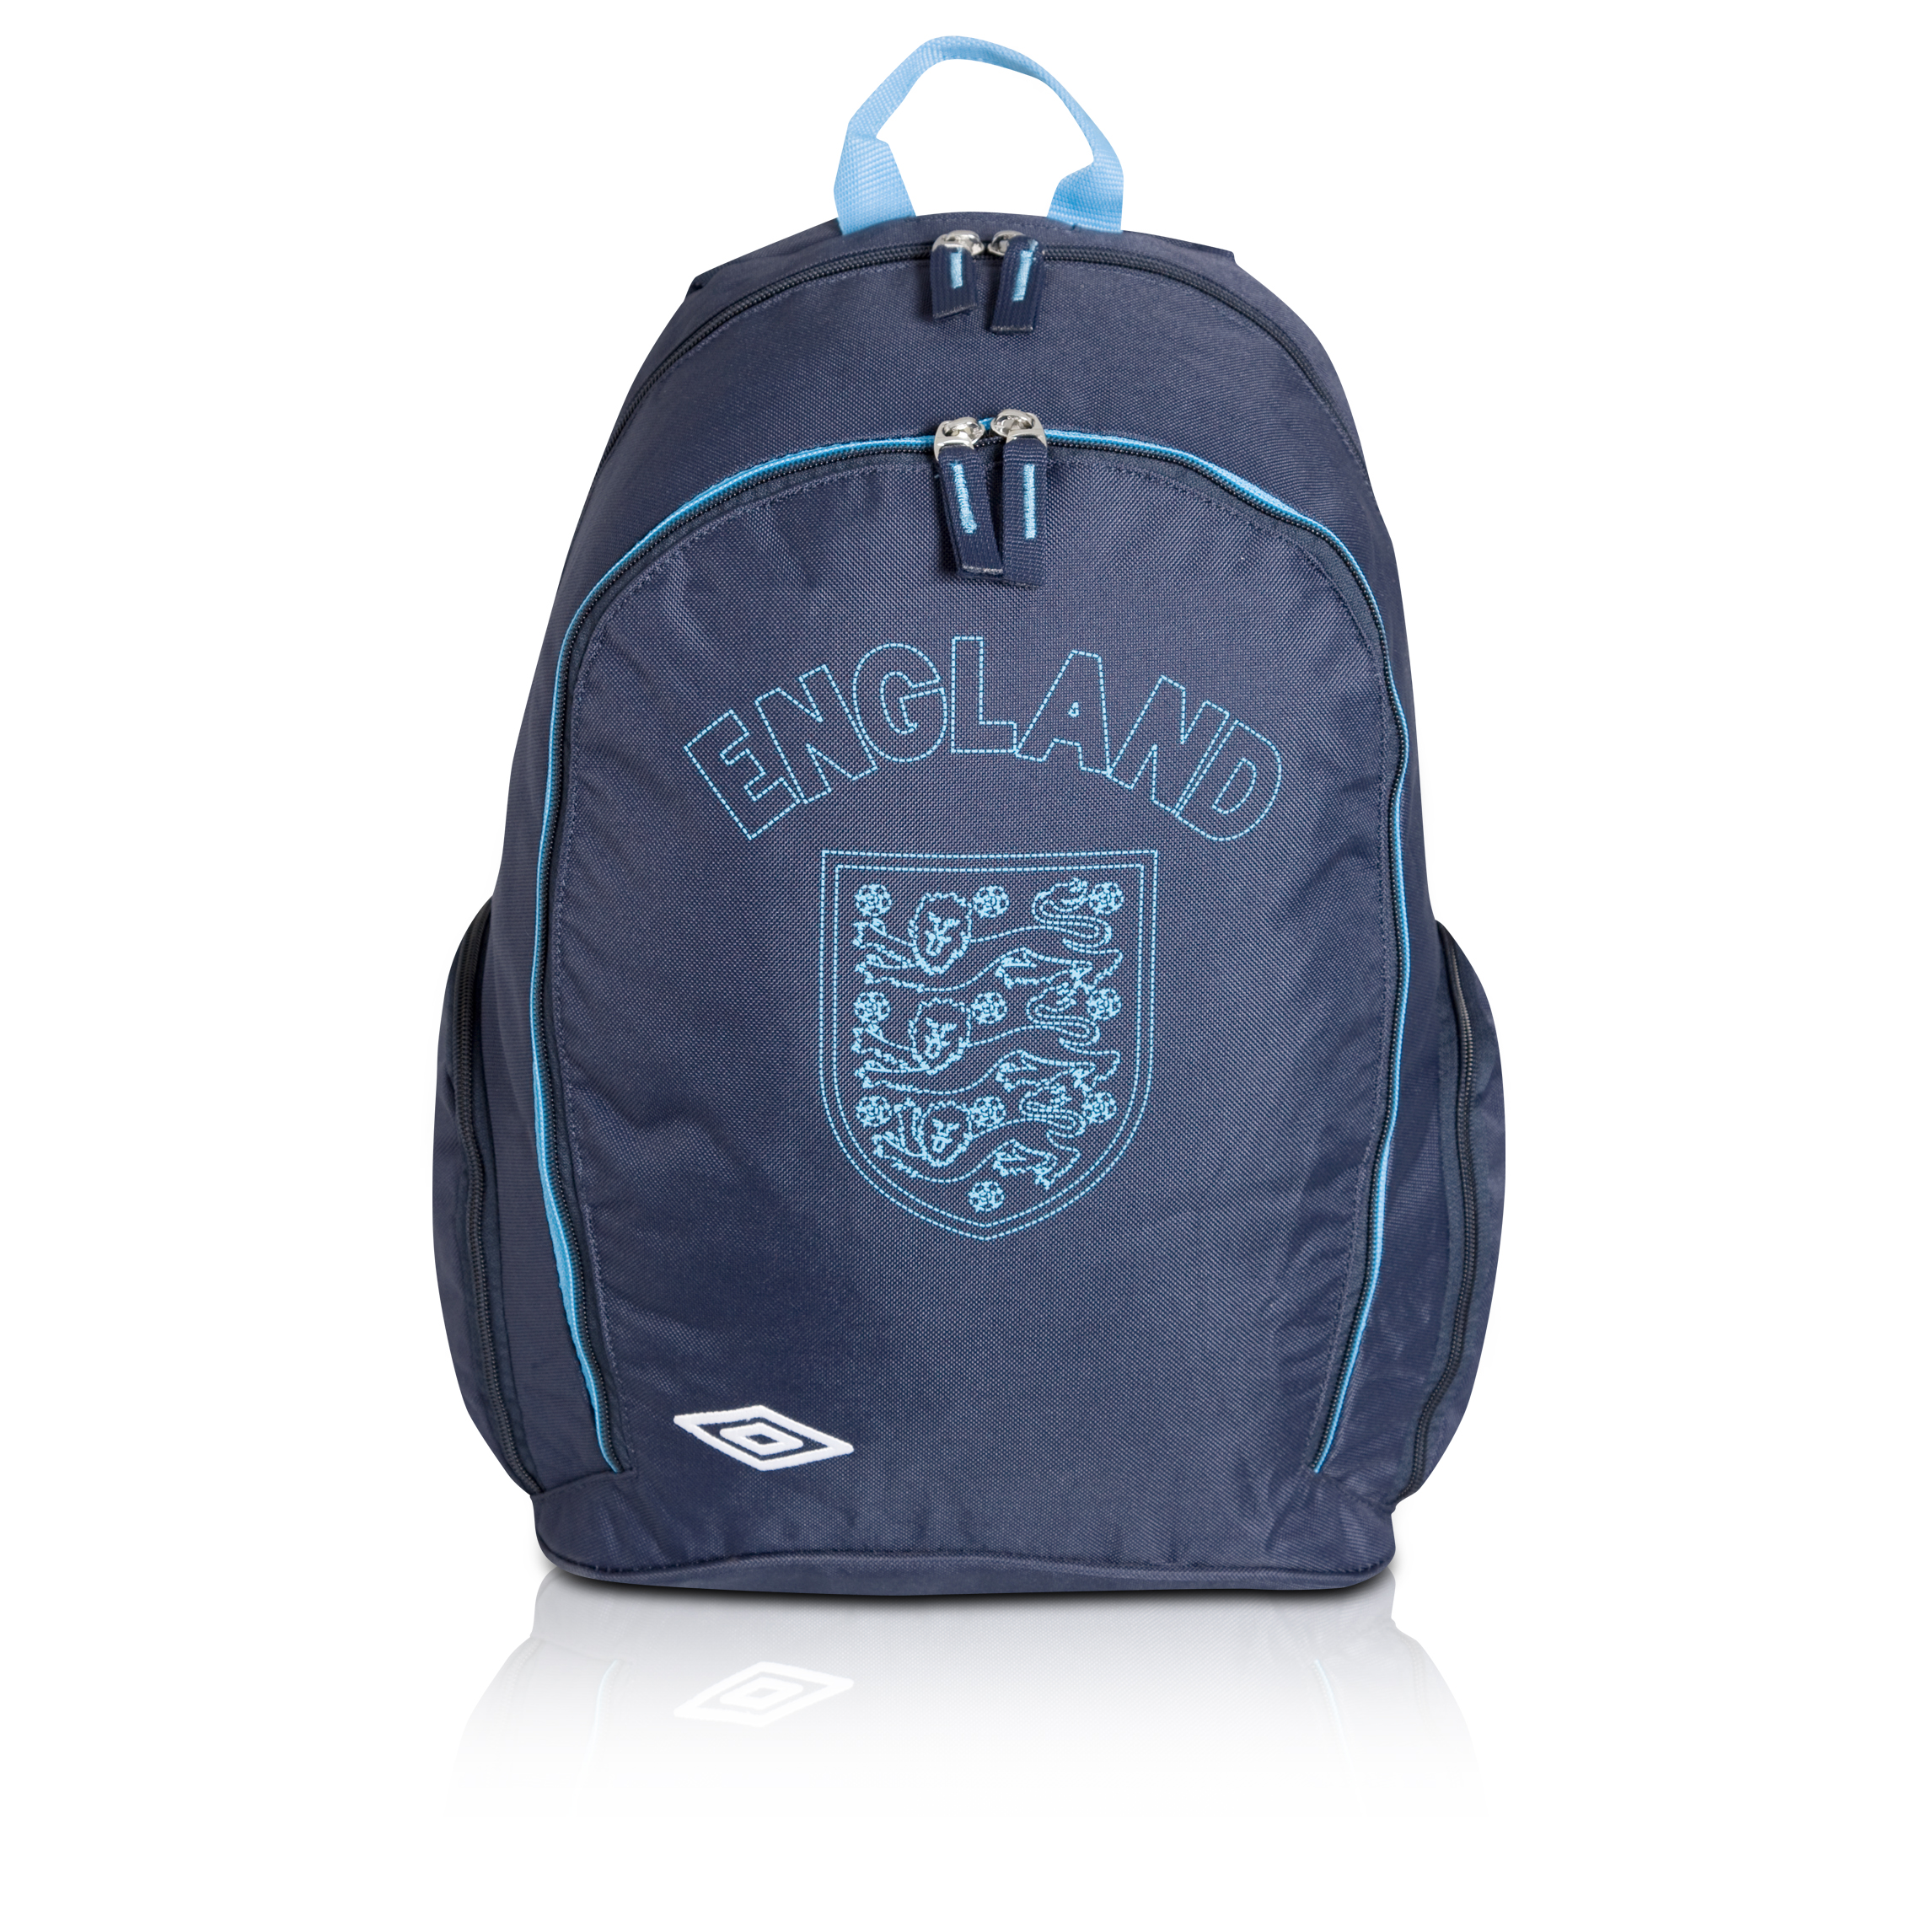 England Backpack 21 11.